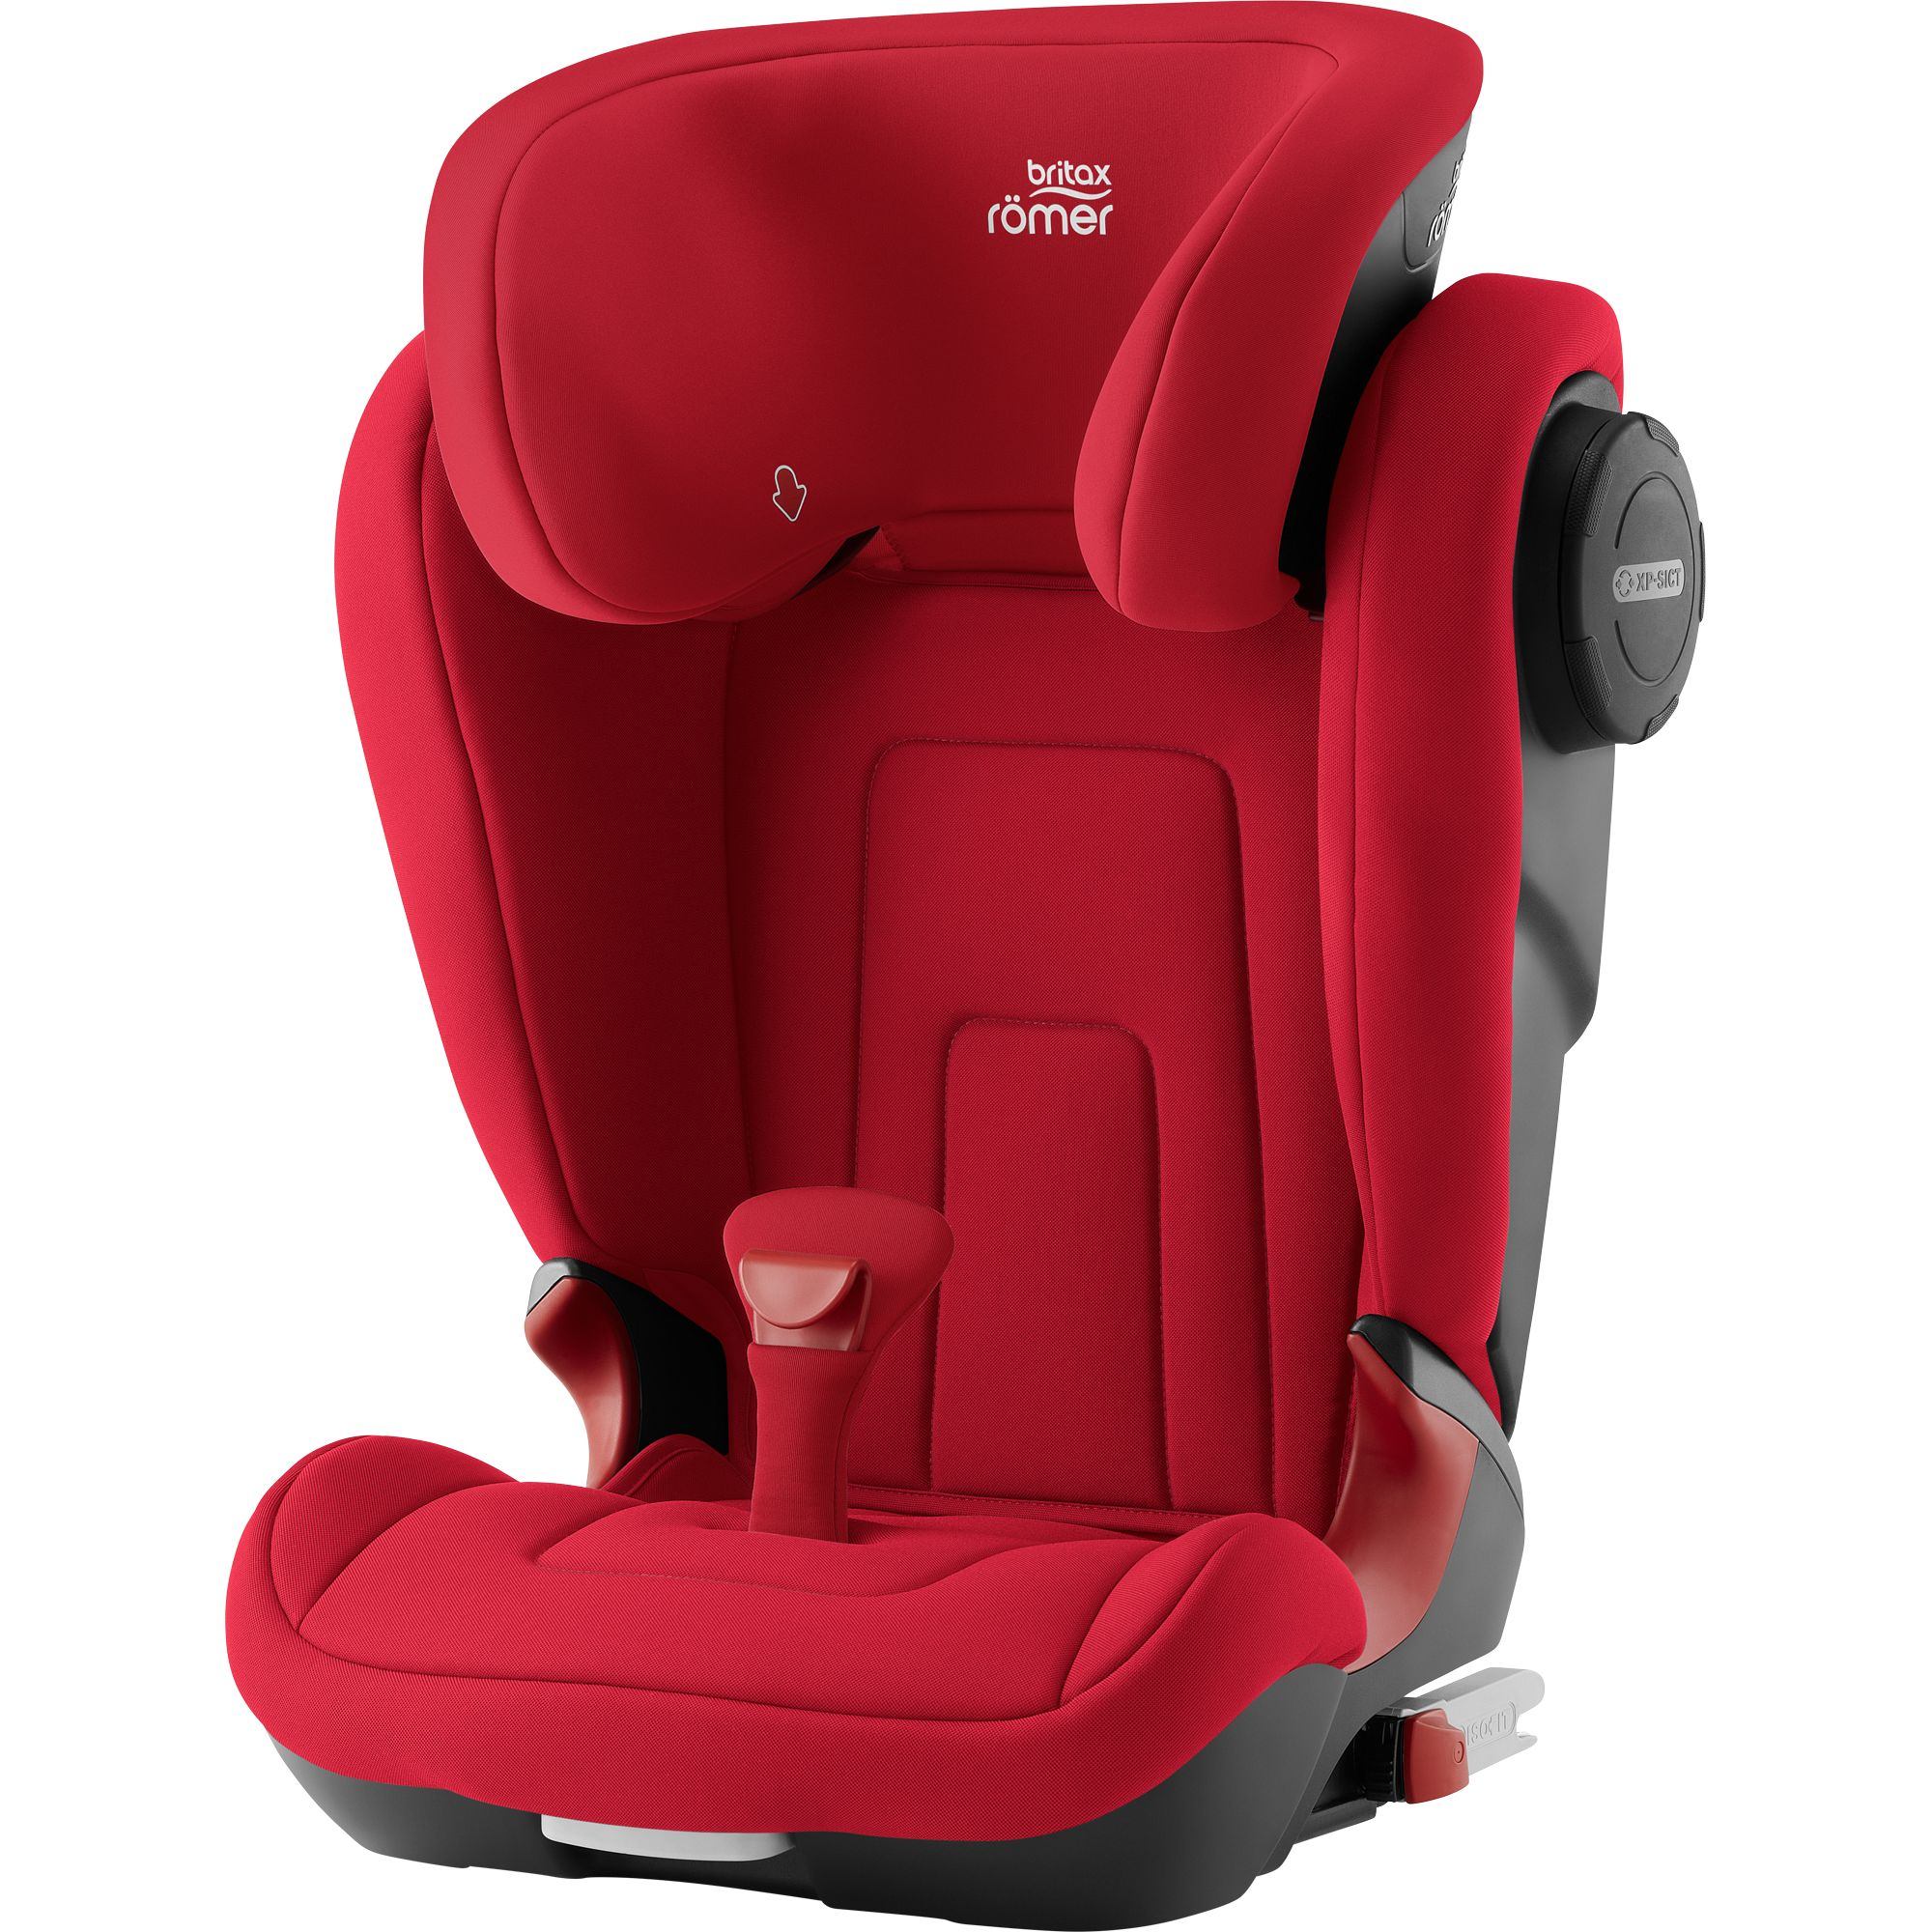 ROMER Kidfix 2 S Fire Red 2020